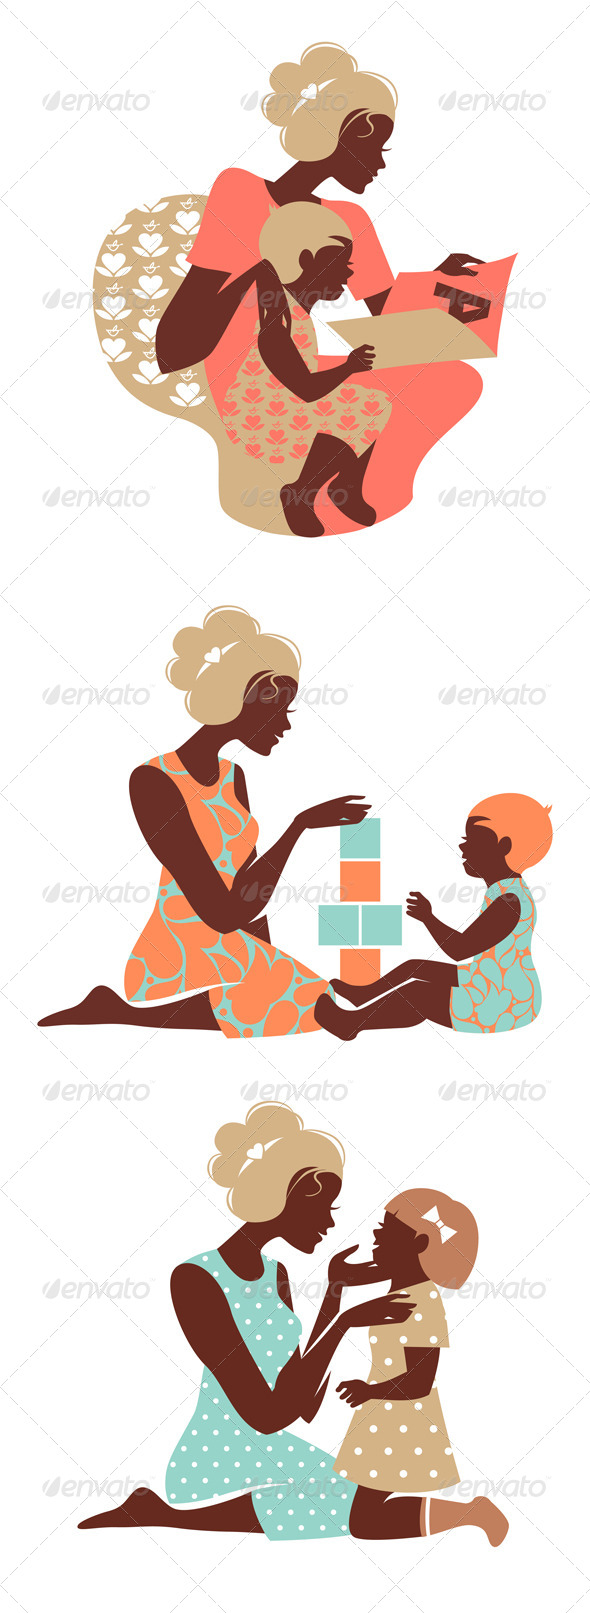 GraphicRiver Set of Mother and Baby Silhouettes 4467260